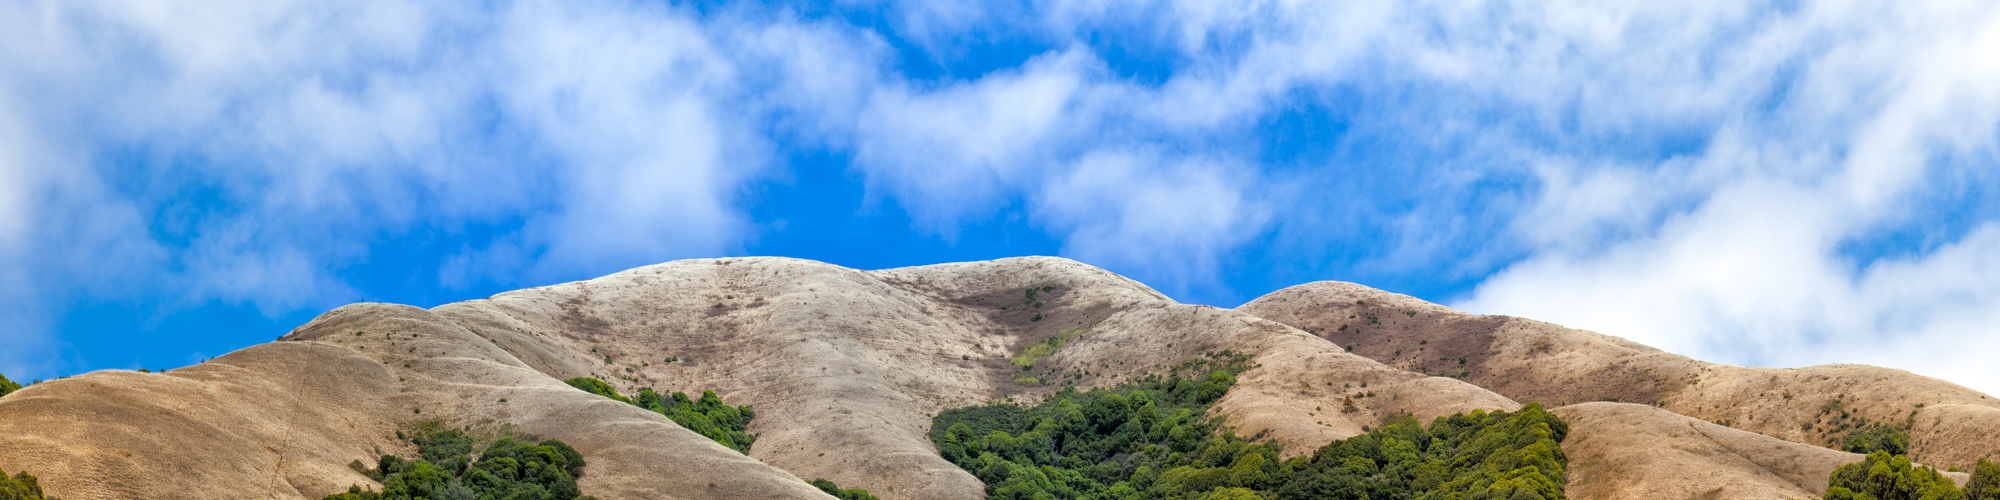 elizabeth-fenwick-photography-painterly-point-reyes-black-mountain-ranch-inverness-ca--sky-lines-.jpg